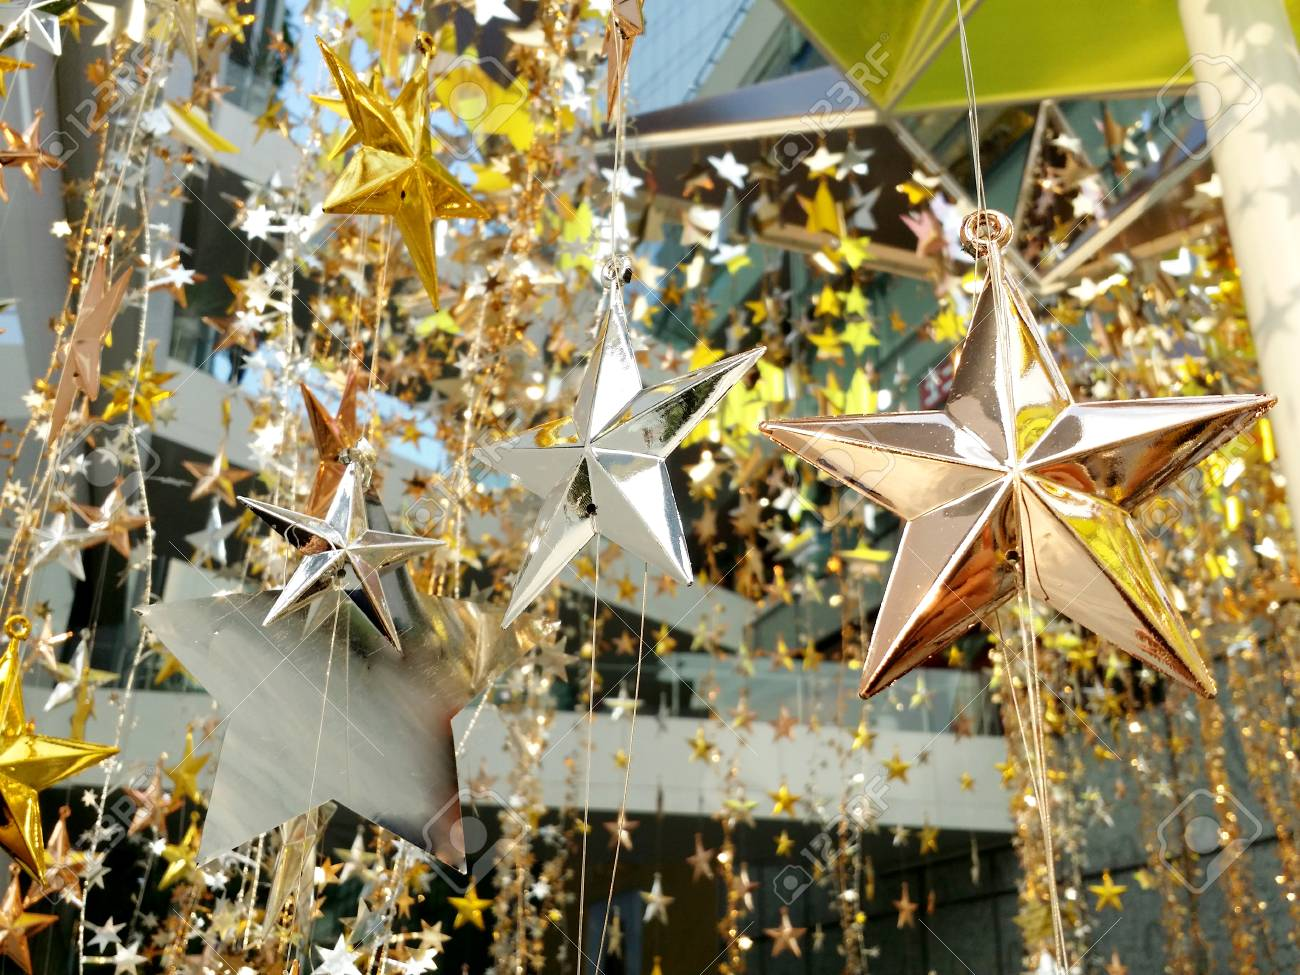 gold silver bronze stars decoration for merry christmas and happy new years stock photo - Decorating With Silver And Gold For Christmas